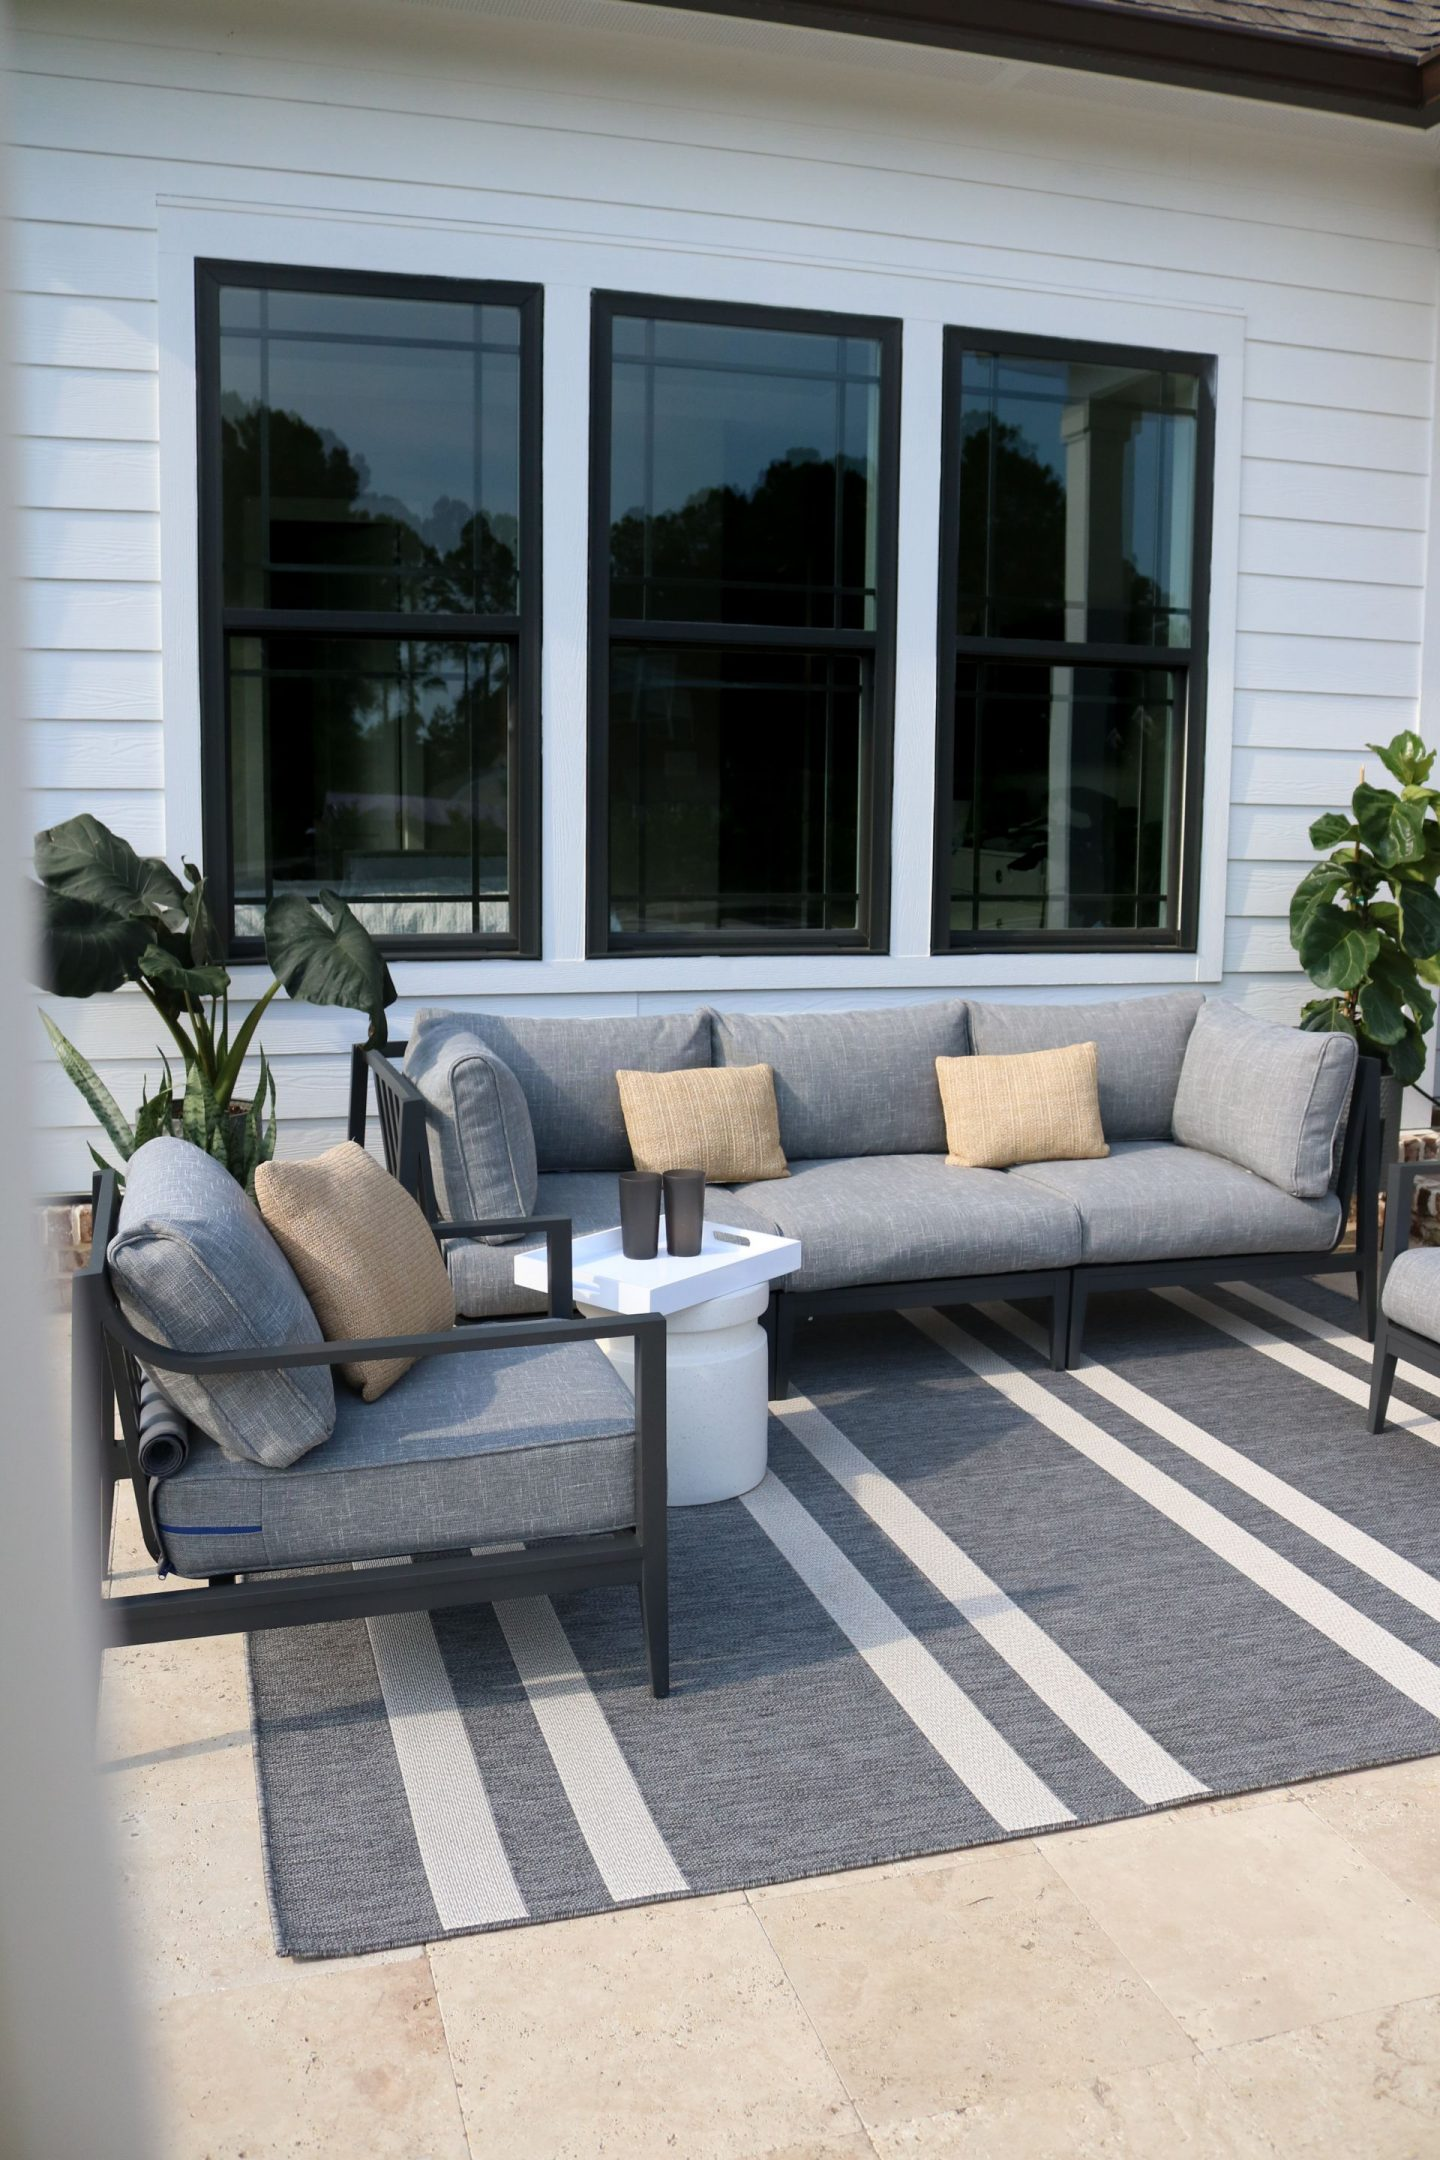 Outer furniture, outdoor furniture, weather proof furniture